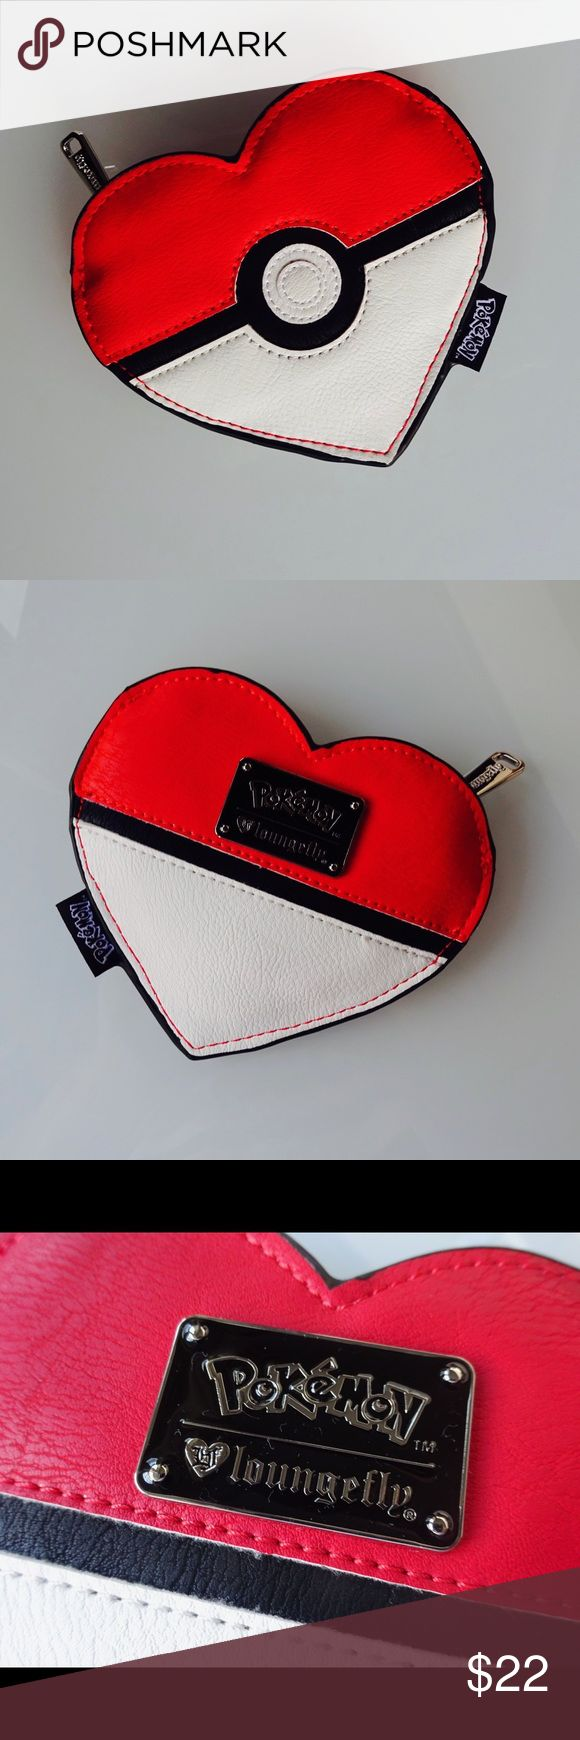 """Pokémon Heart Coin Bag HEART-SHAPED FAUX LEATHER COIN BAG WITH APPLIQUE DETAILS. MEASUREMENTS: W: 5.8"""" X H: 5"""" Pokemon Bags Cosmetic Bags & Cases"""